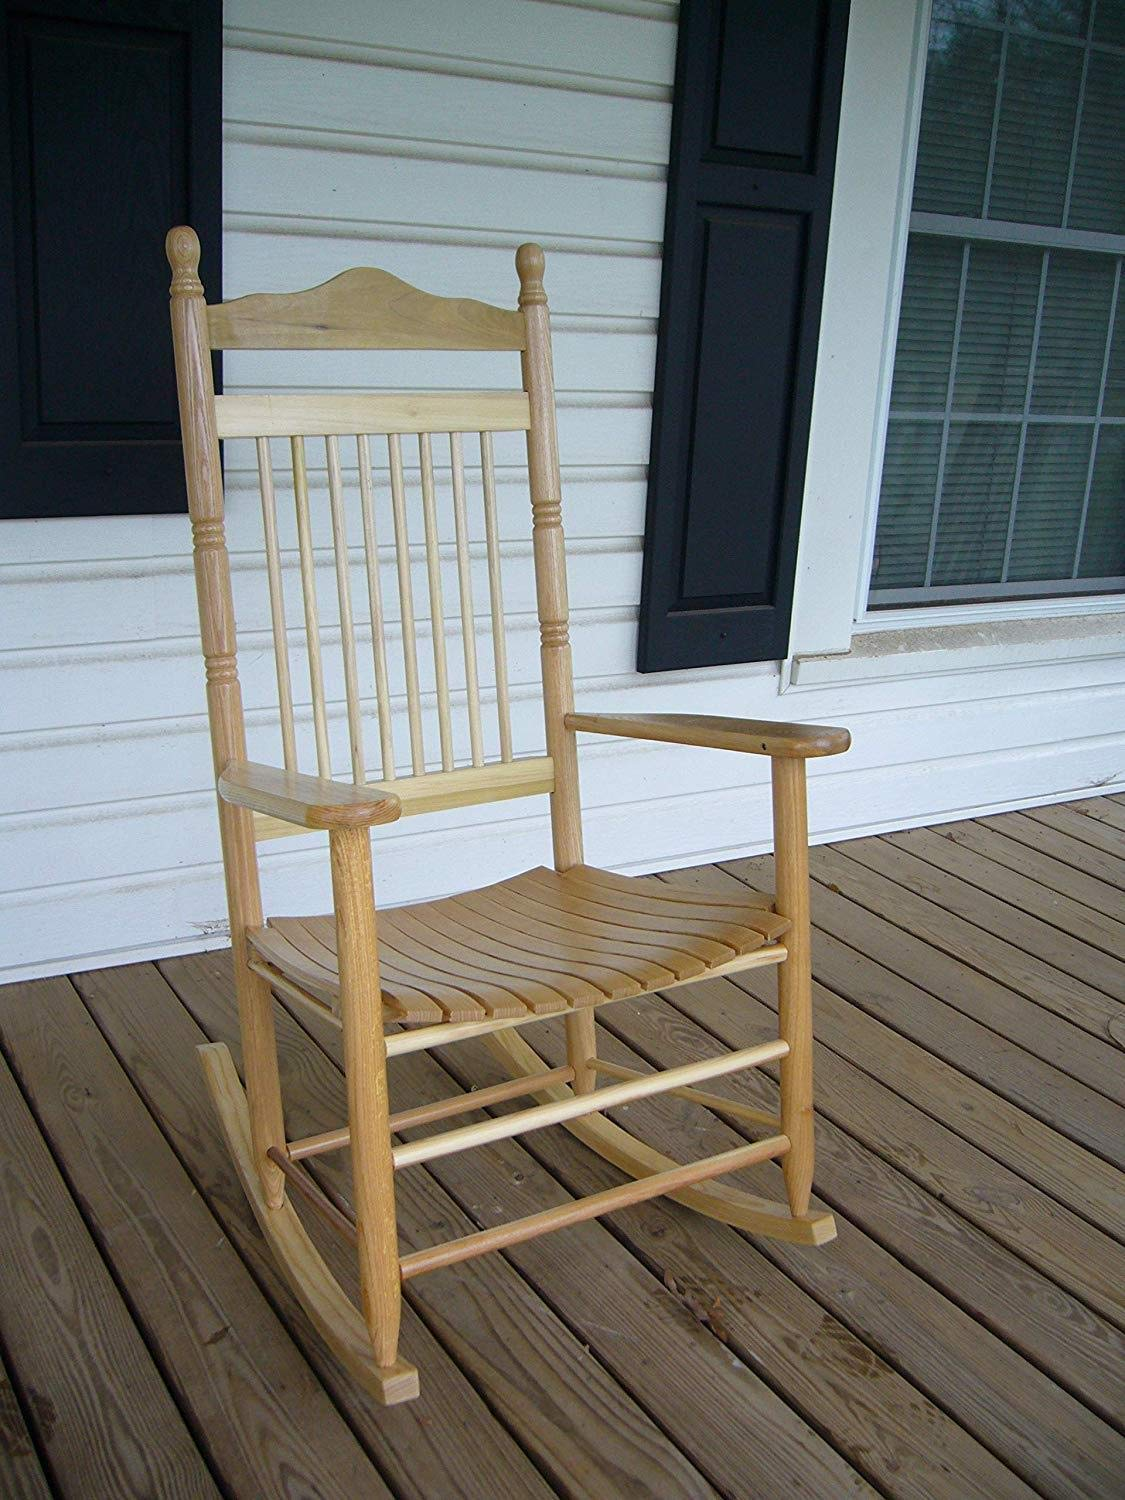 Dixie Seating Calabash Wood Rocking Chair No. 467SRTA Unfinished